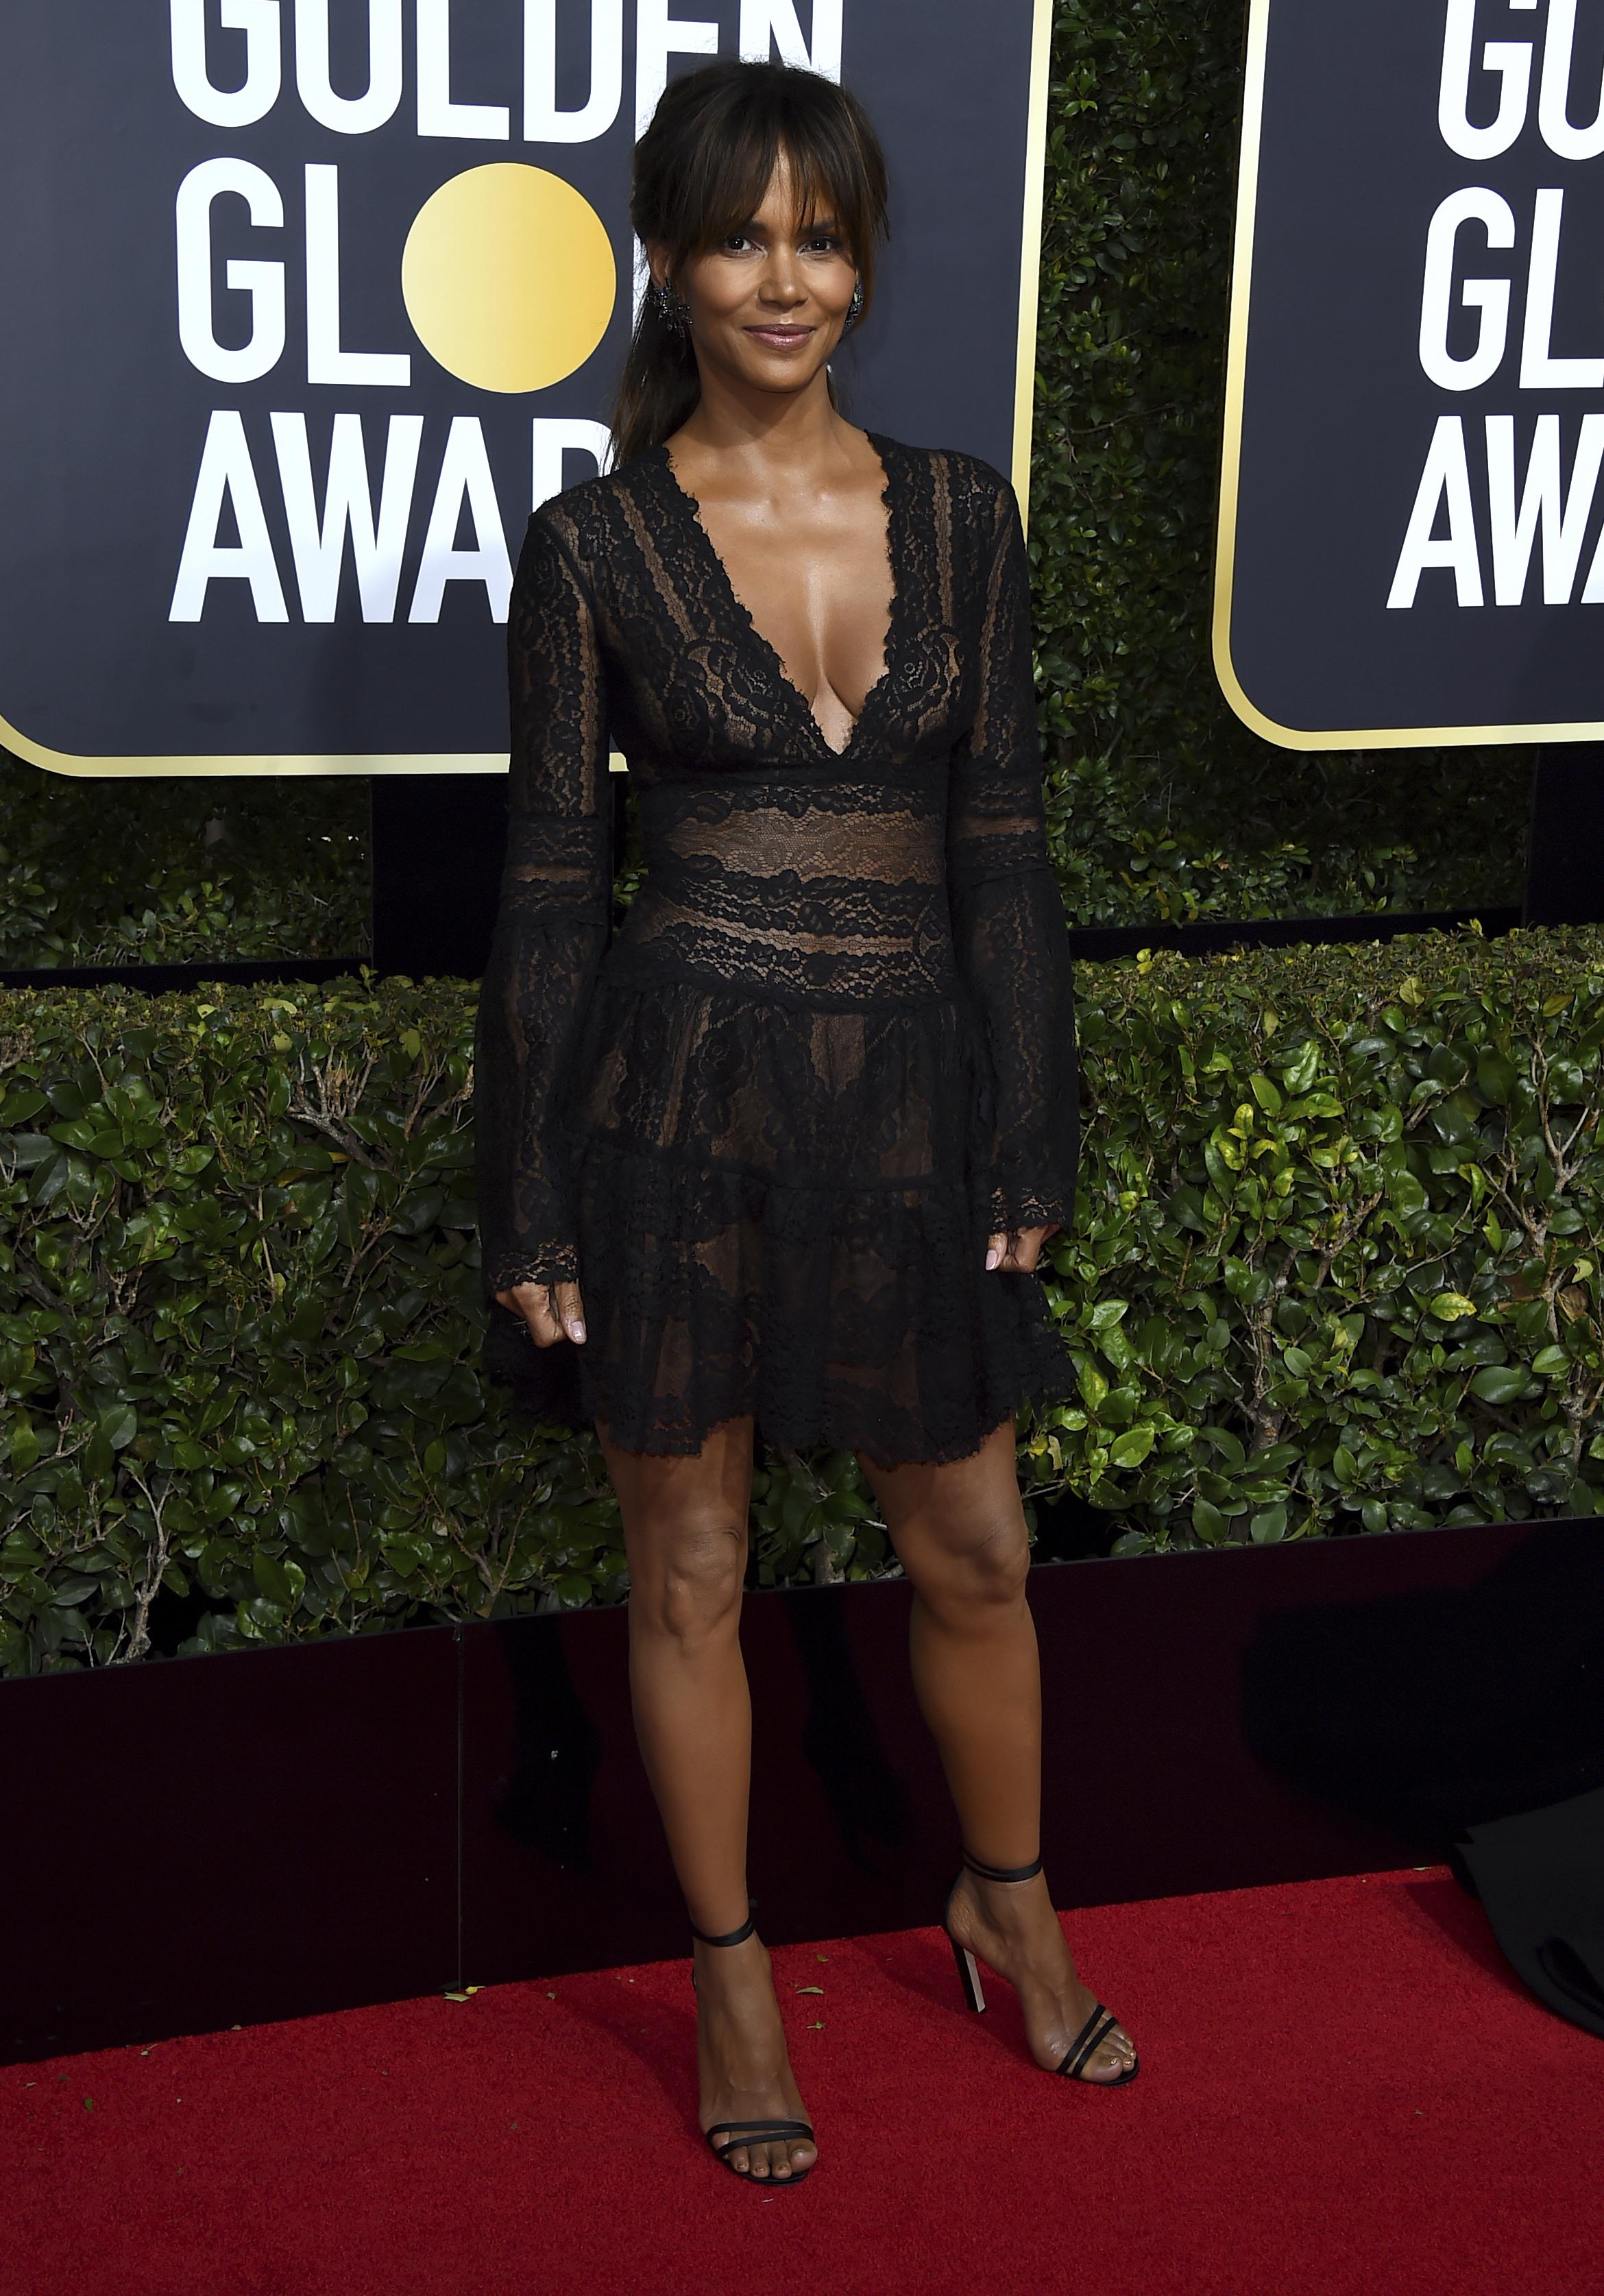 <div class='meta'><div class='origin-logo' data-origin='AP'></div><span class='caption-text' data-credit='Jordan Strauss/Invision/AP'>Halle Berry arrives at the 75th annual Golden Globe Awards at the Beverly Hilton Hotel on Sunday, Jan. 7, 2018, in Beverly Hills, Calif.</span></div>